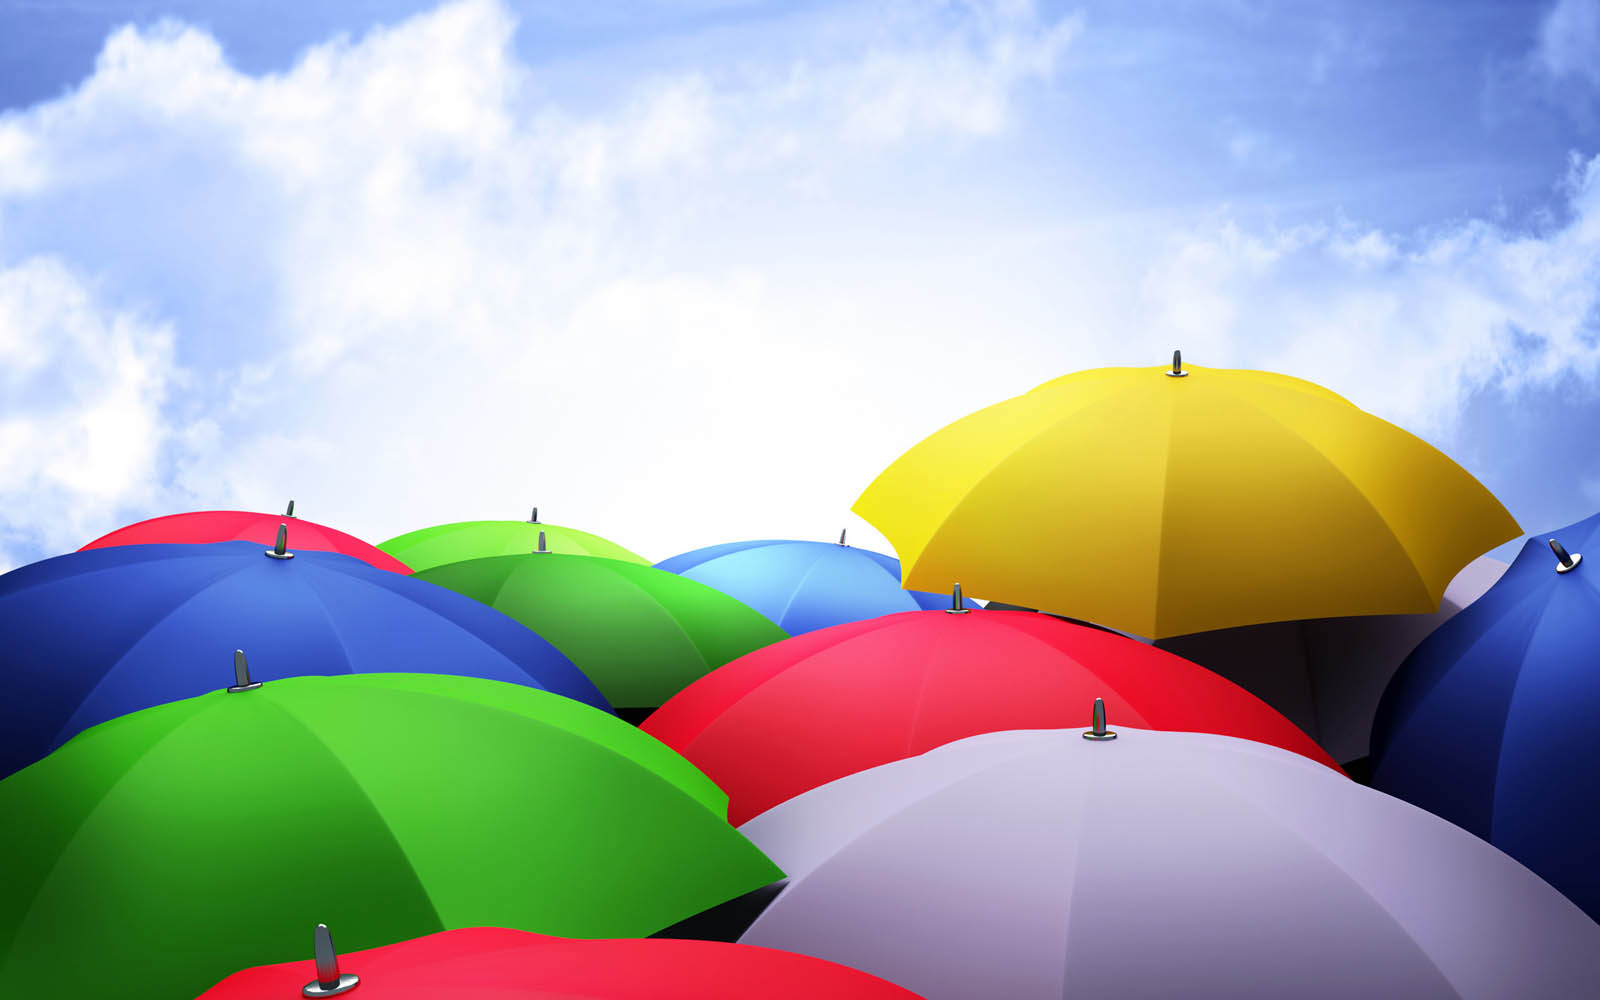 wallpapers: Colorful Umbrellas - photo#35